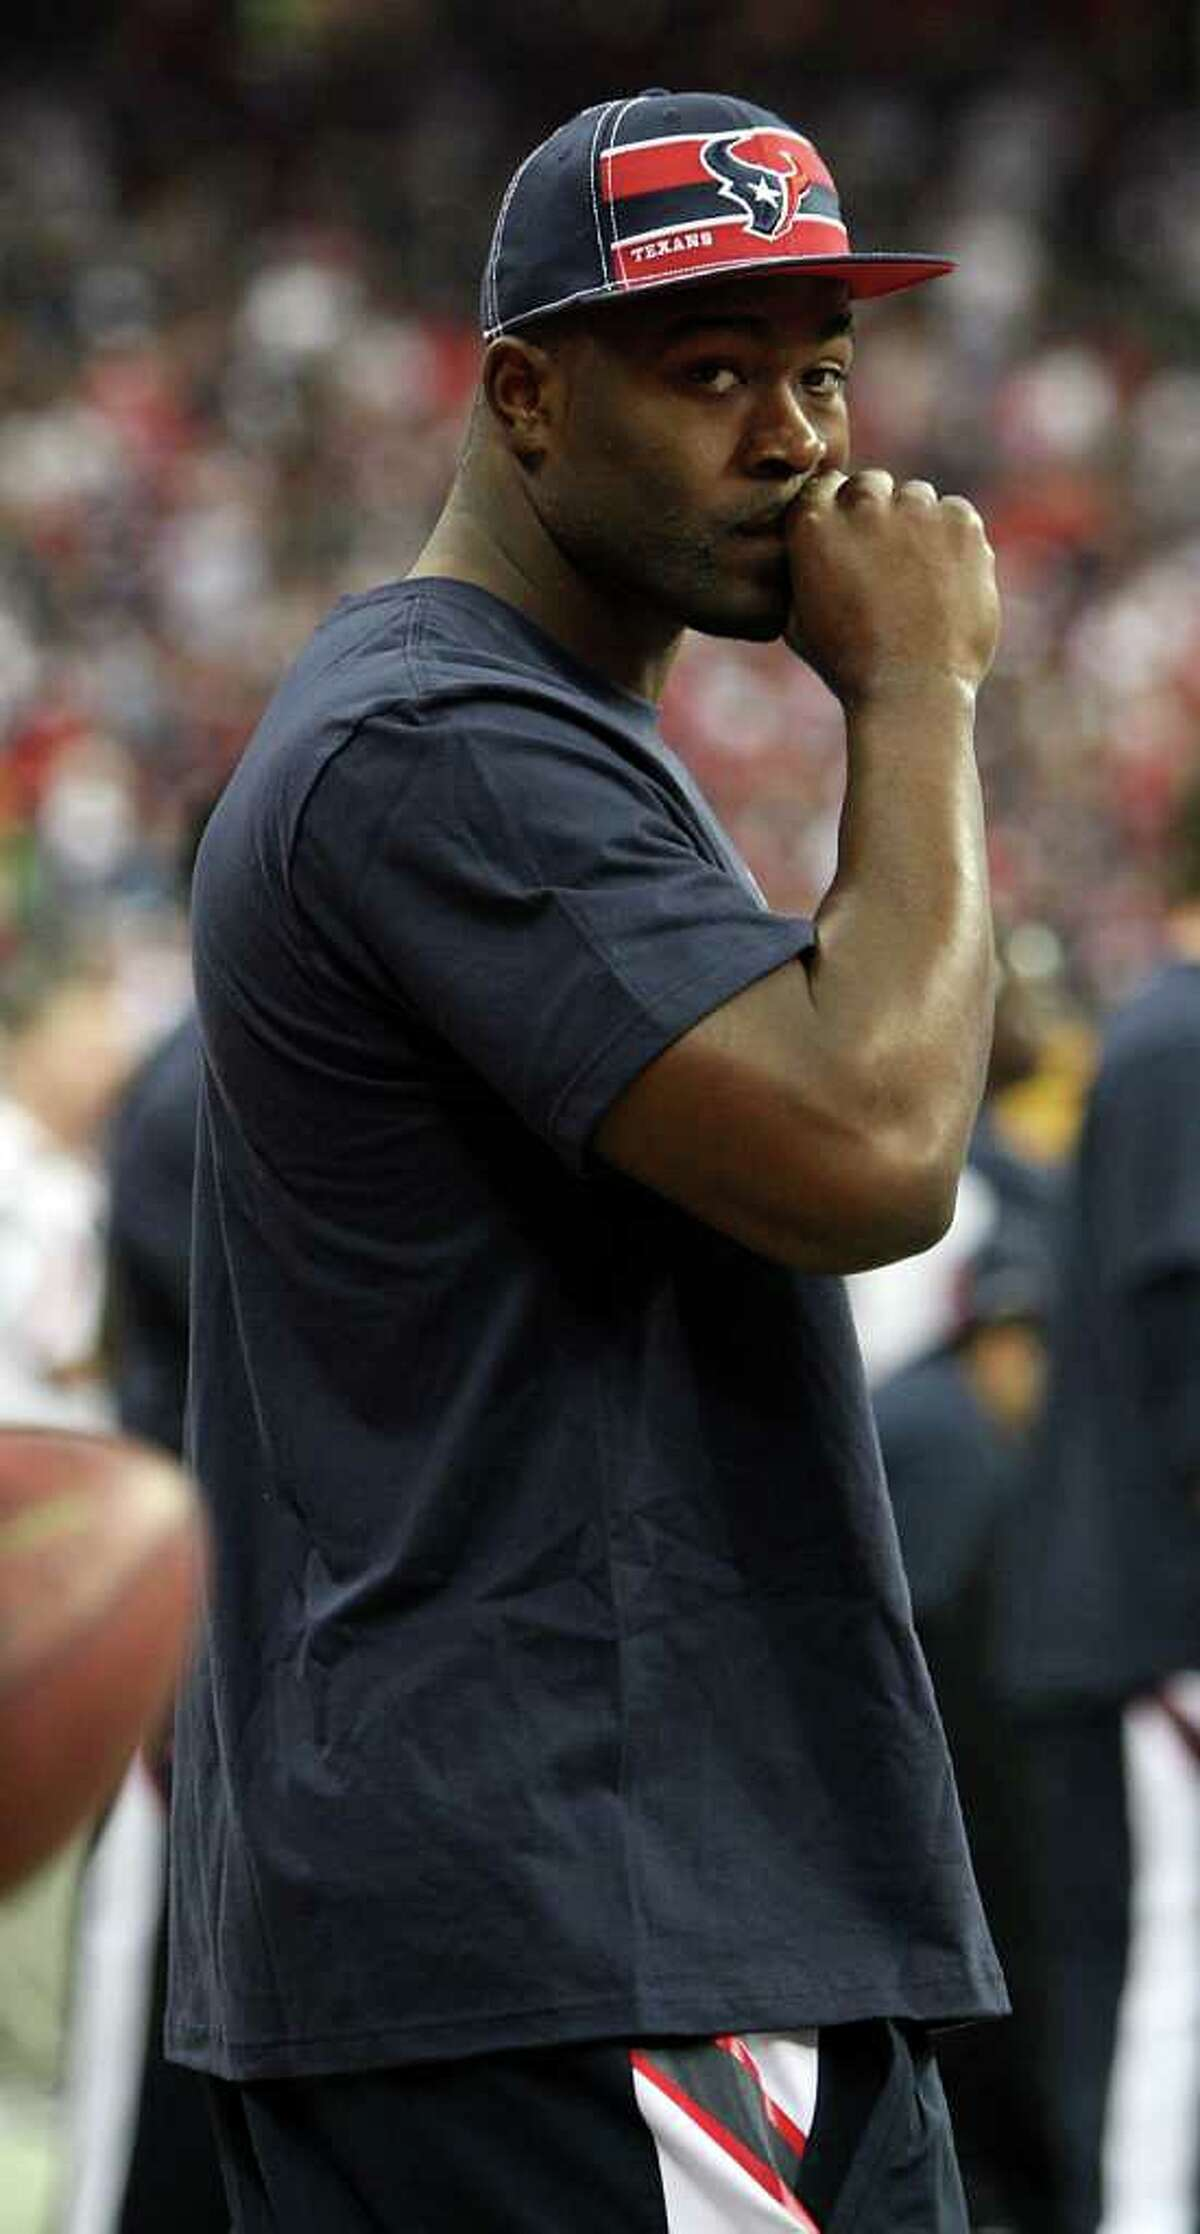 Karen warren: Chronicle SIDELINED: Texans linebacker Mario Williams returned to the sideline in street clothes after he injured a pectoral muscle in the first half Sunday.